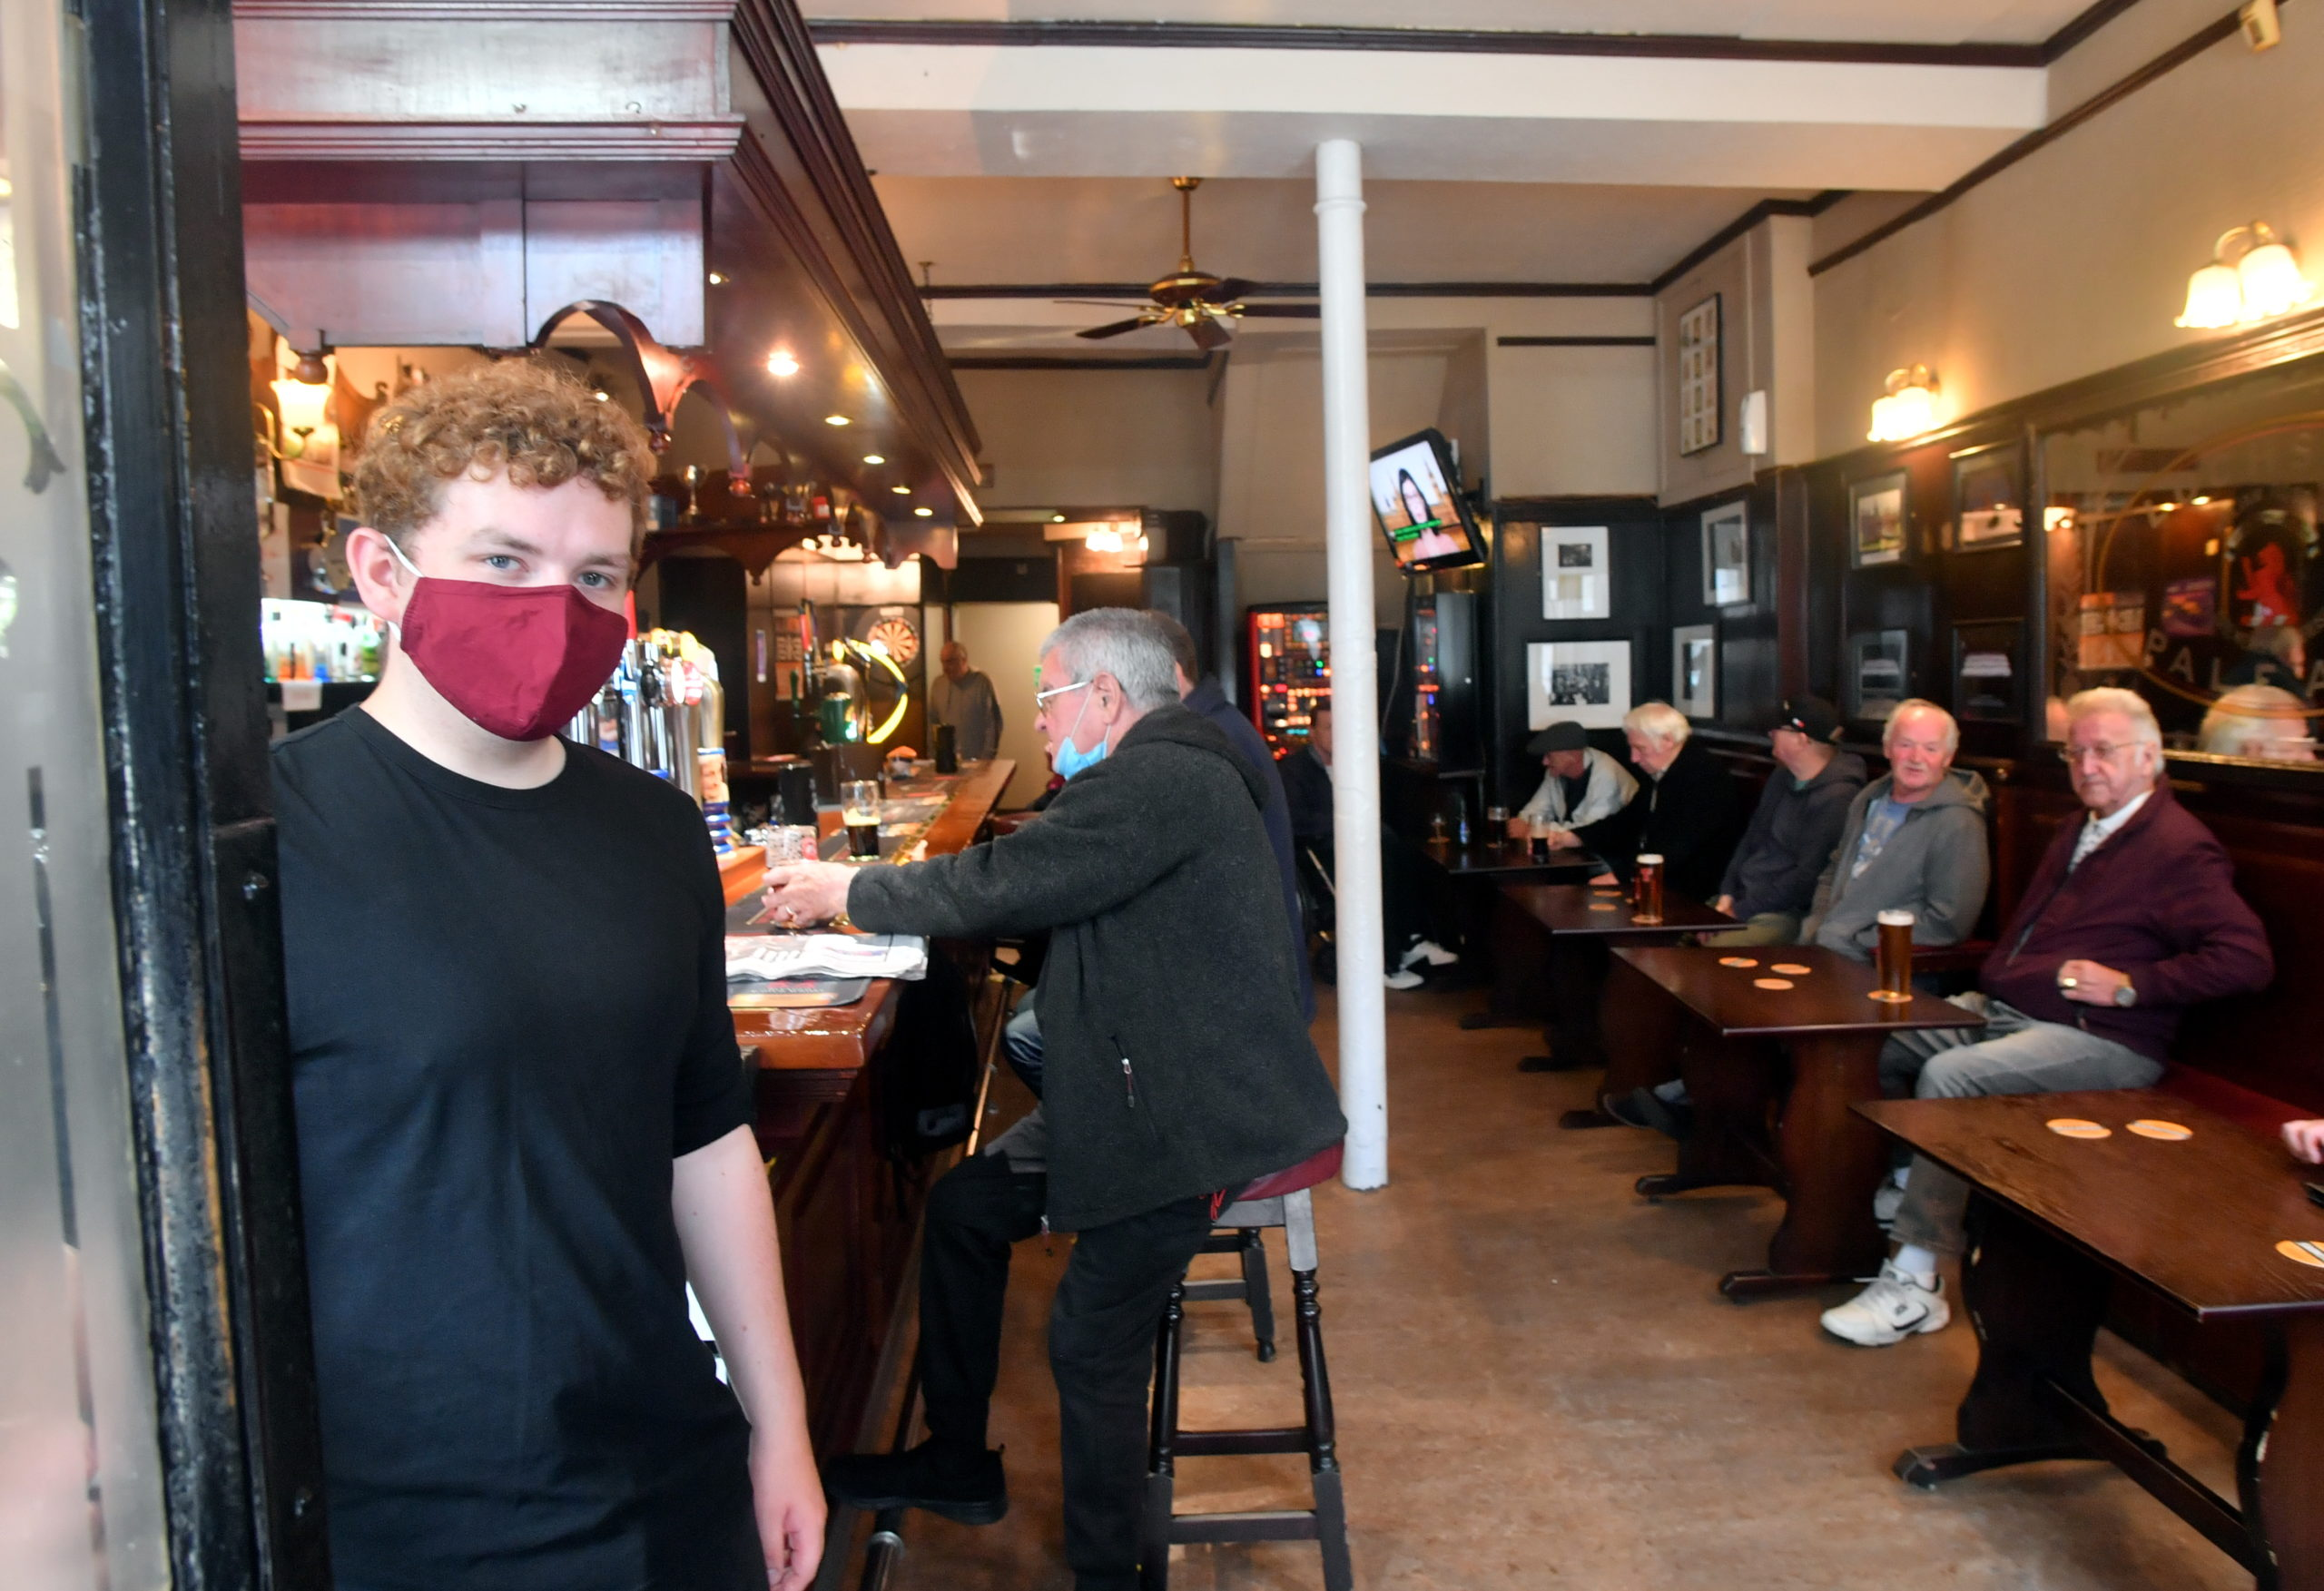 Pubs, cafes and restaurants are open for business once again